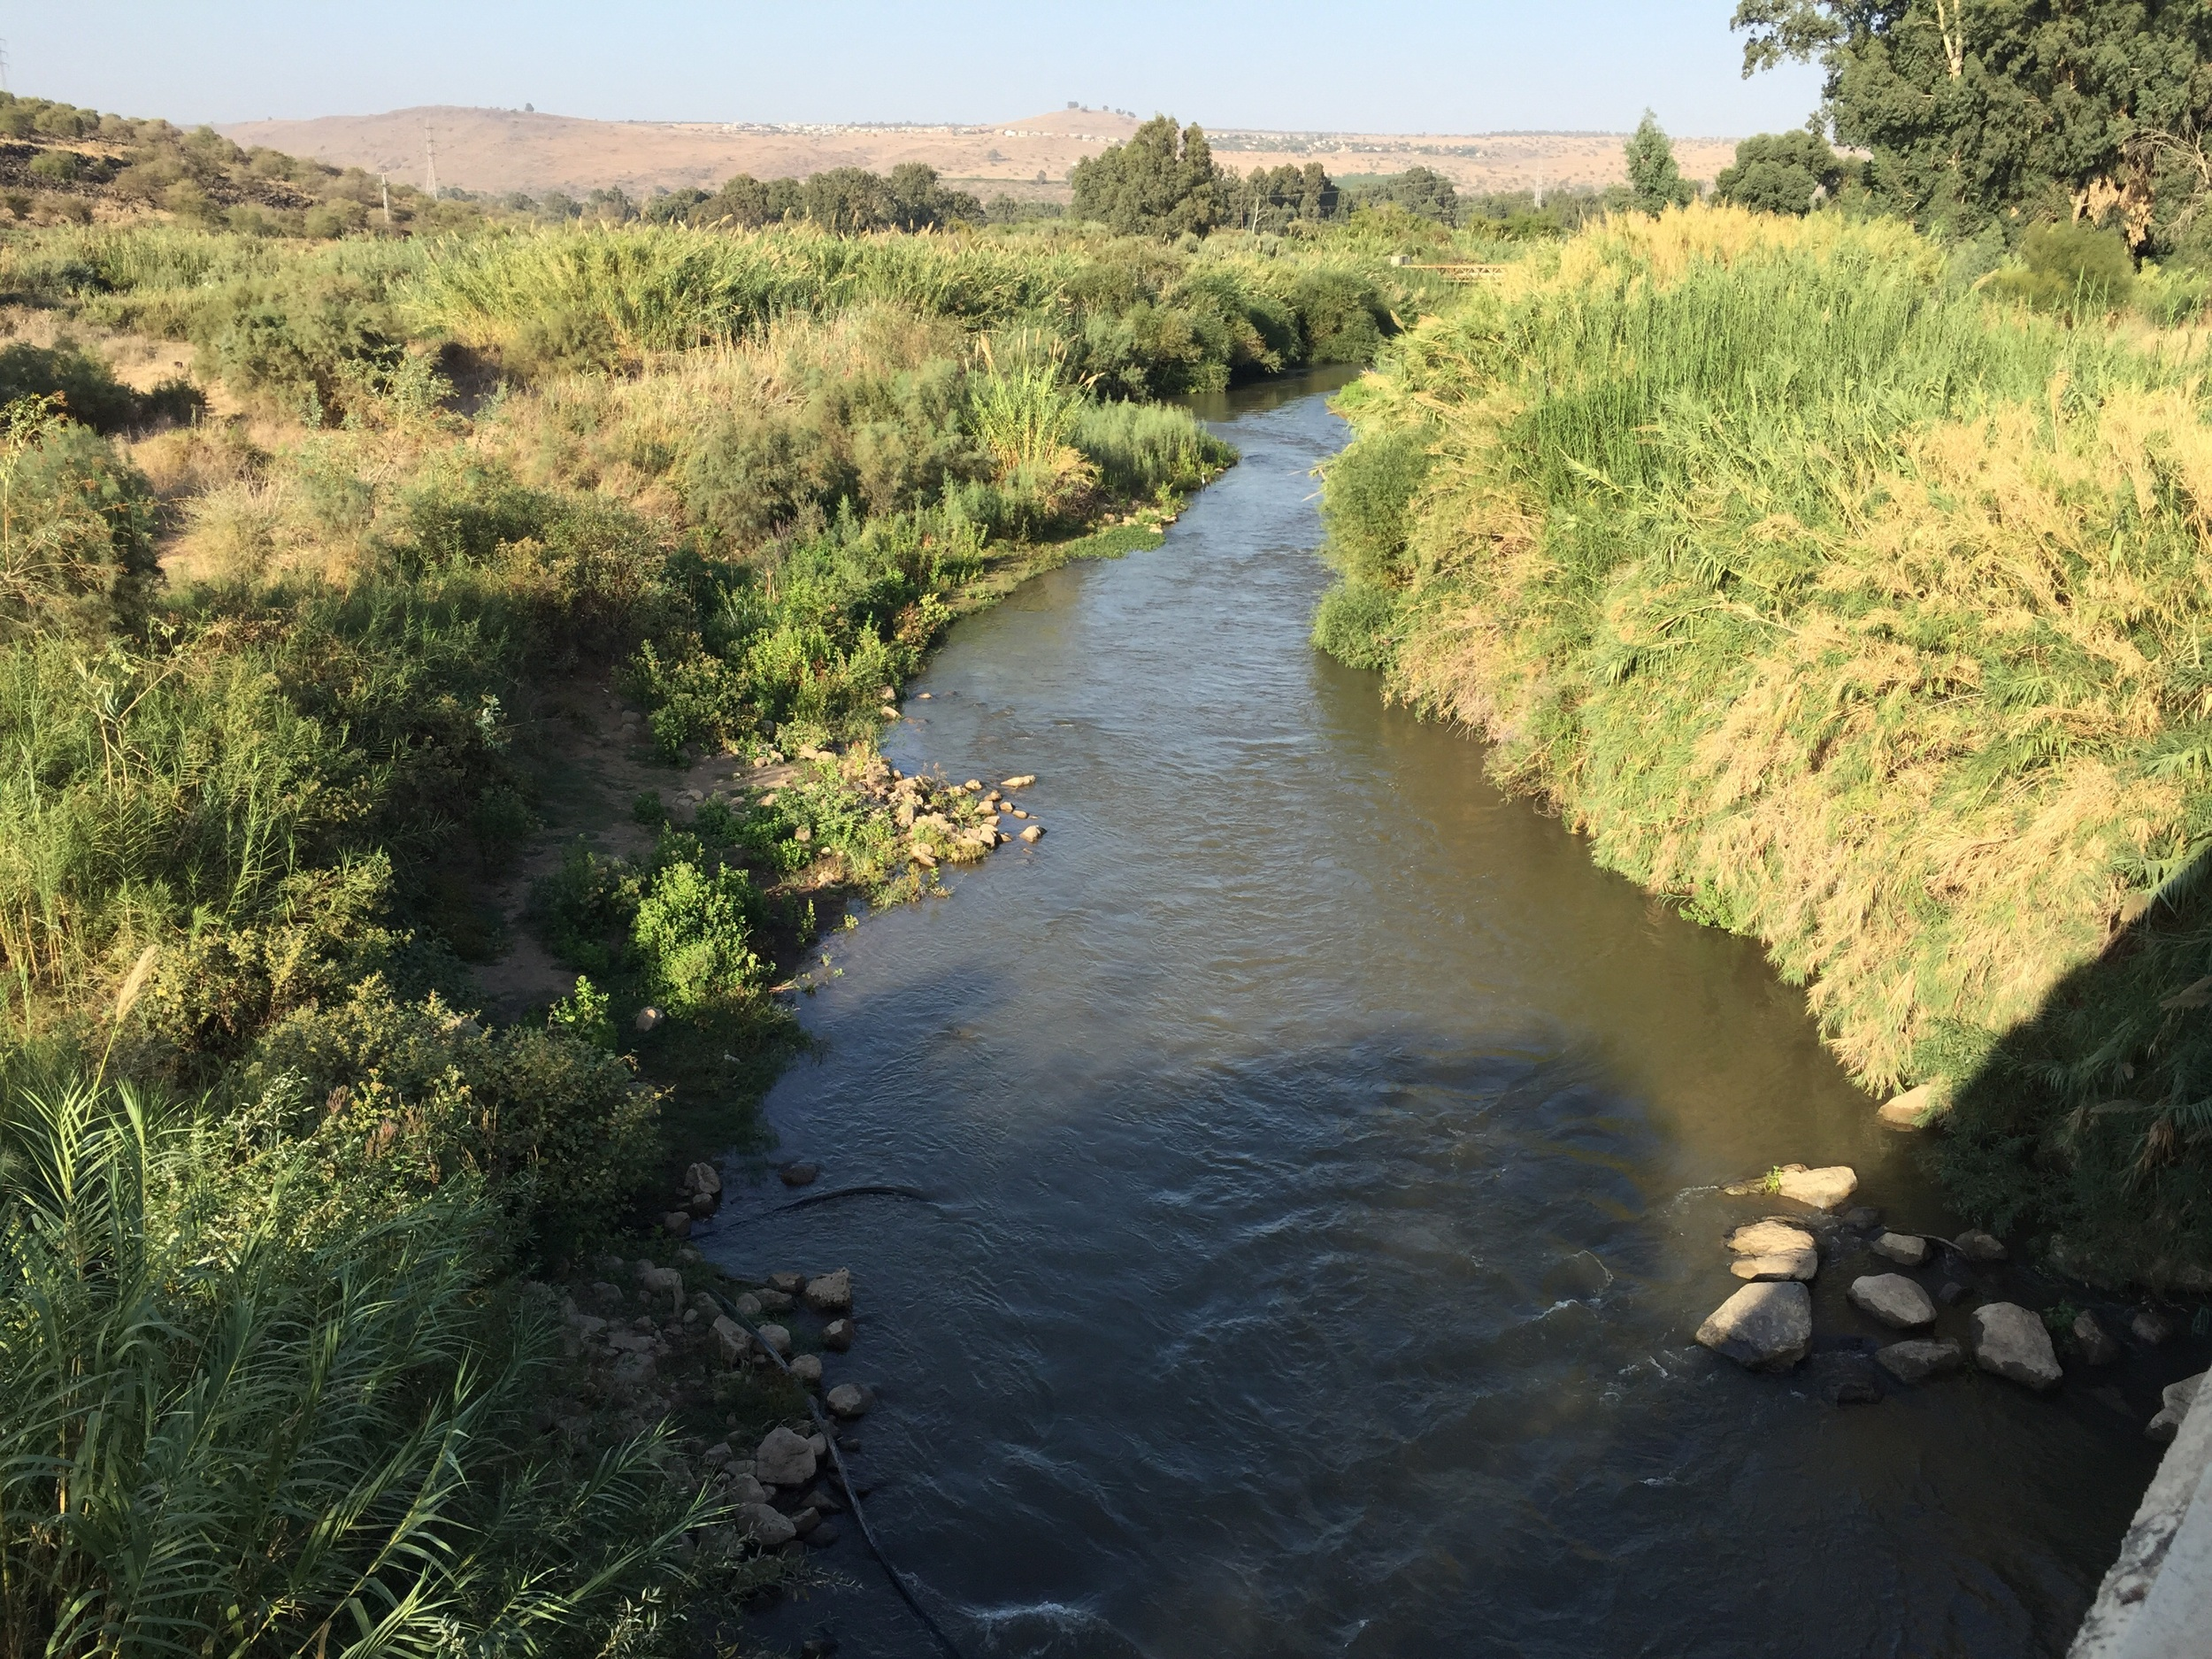 The Jordan river before it enters the Sea of Galilee from the north.